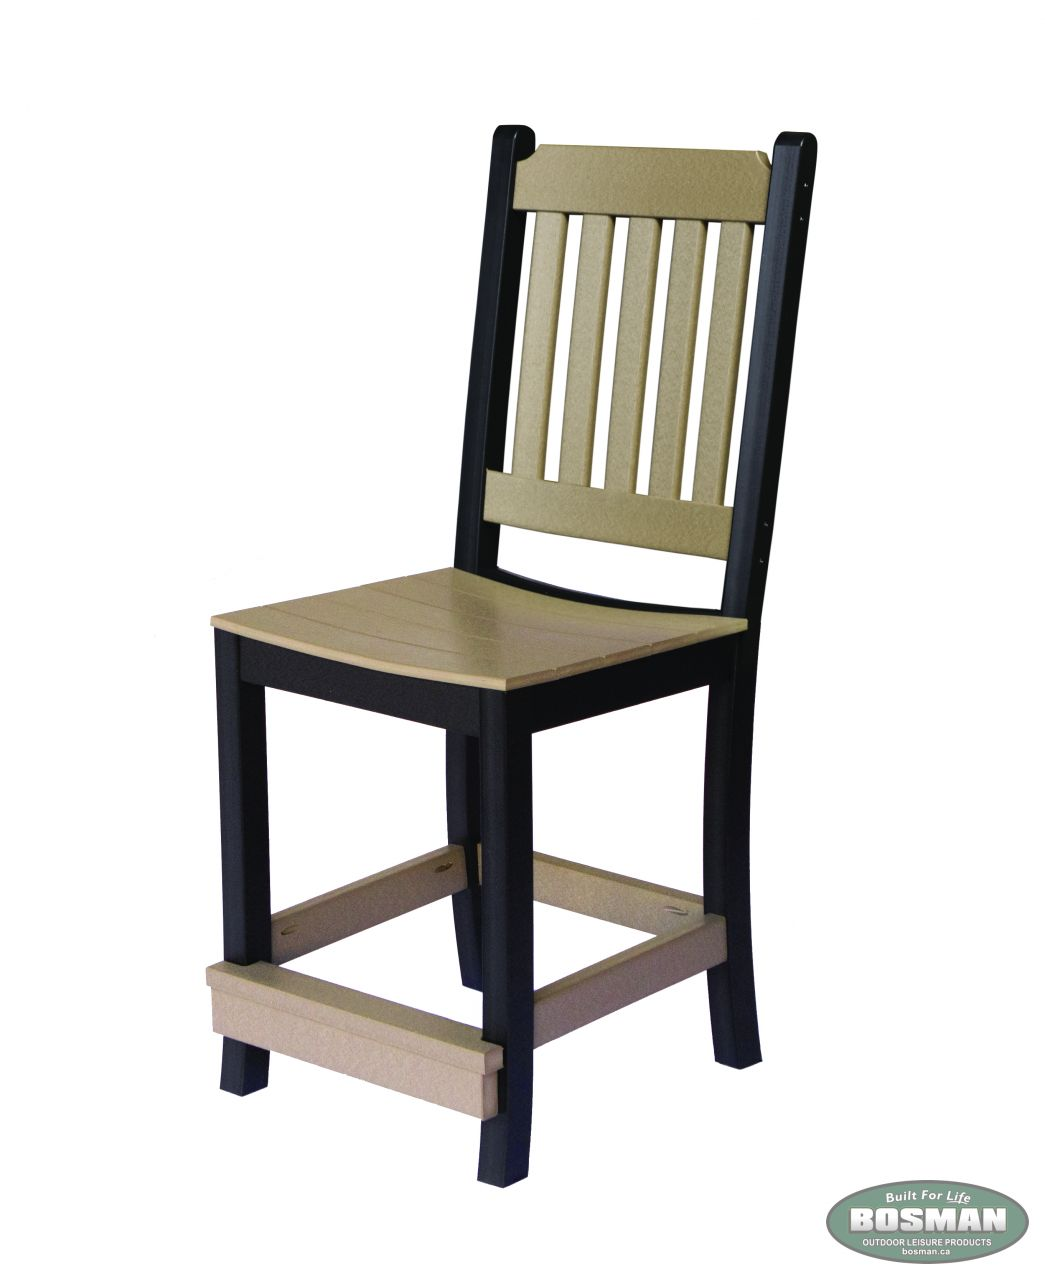 Outdoor Patio Furniture Kitchener: Garden Mission Counter Chair